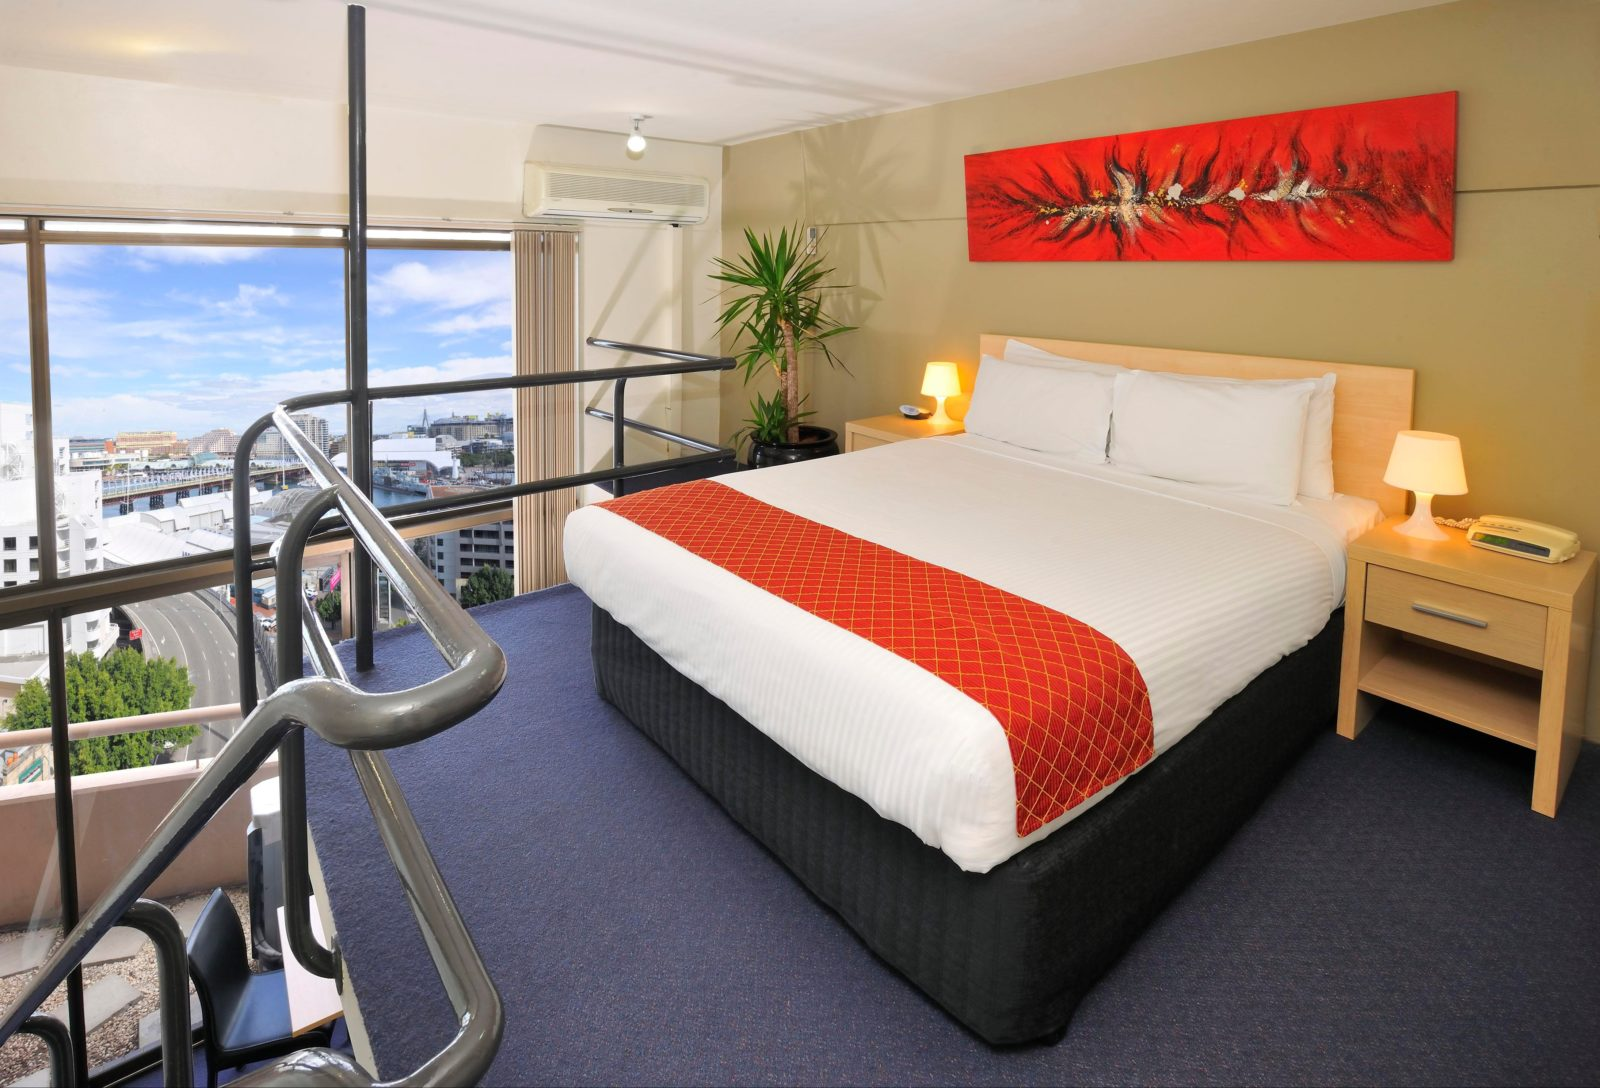 Metro Apartments on Darling Harbour - one bedroom apartment